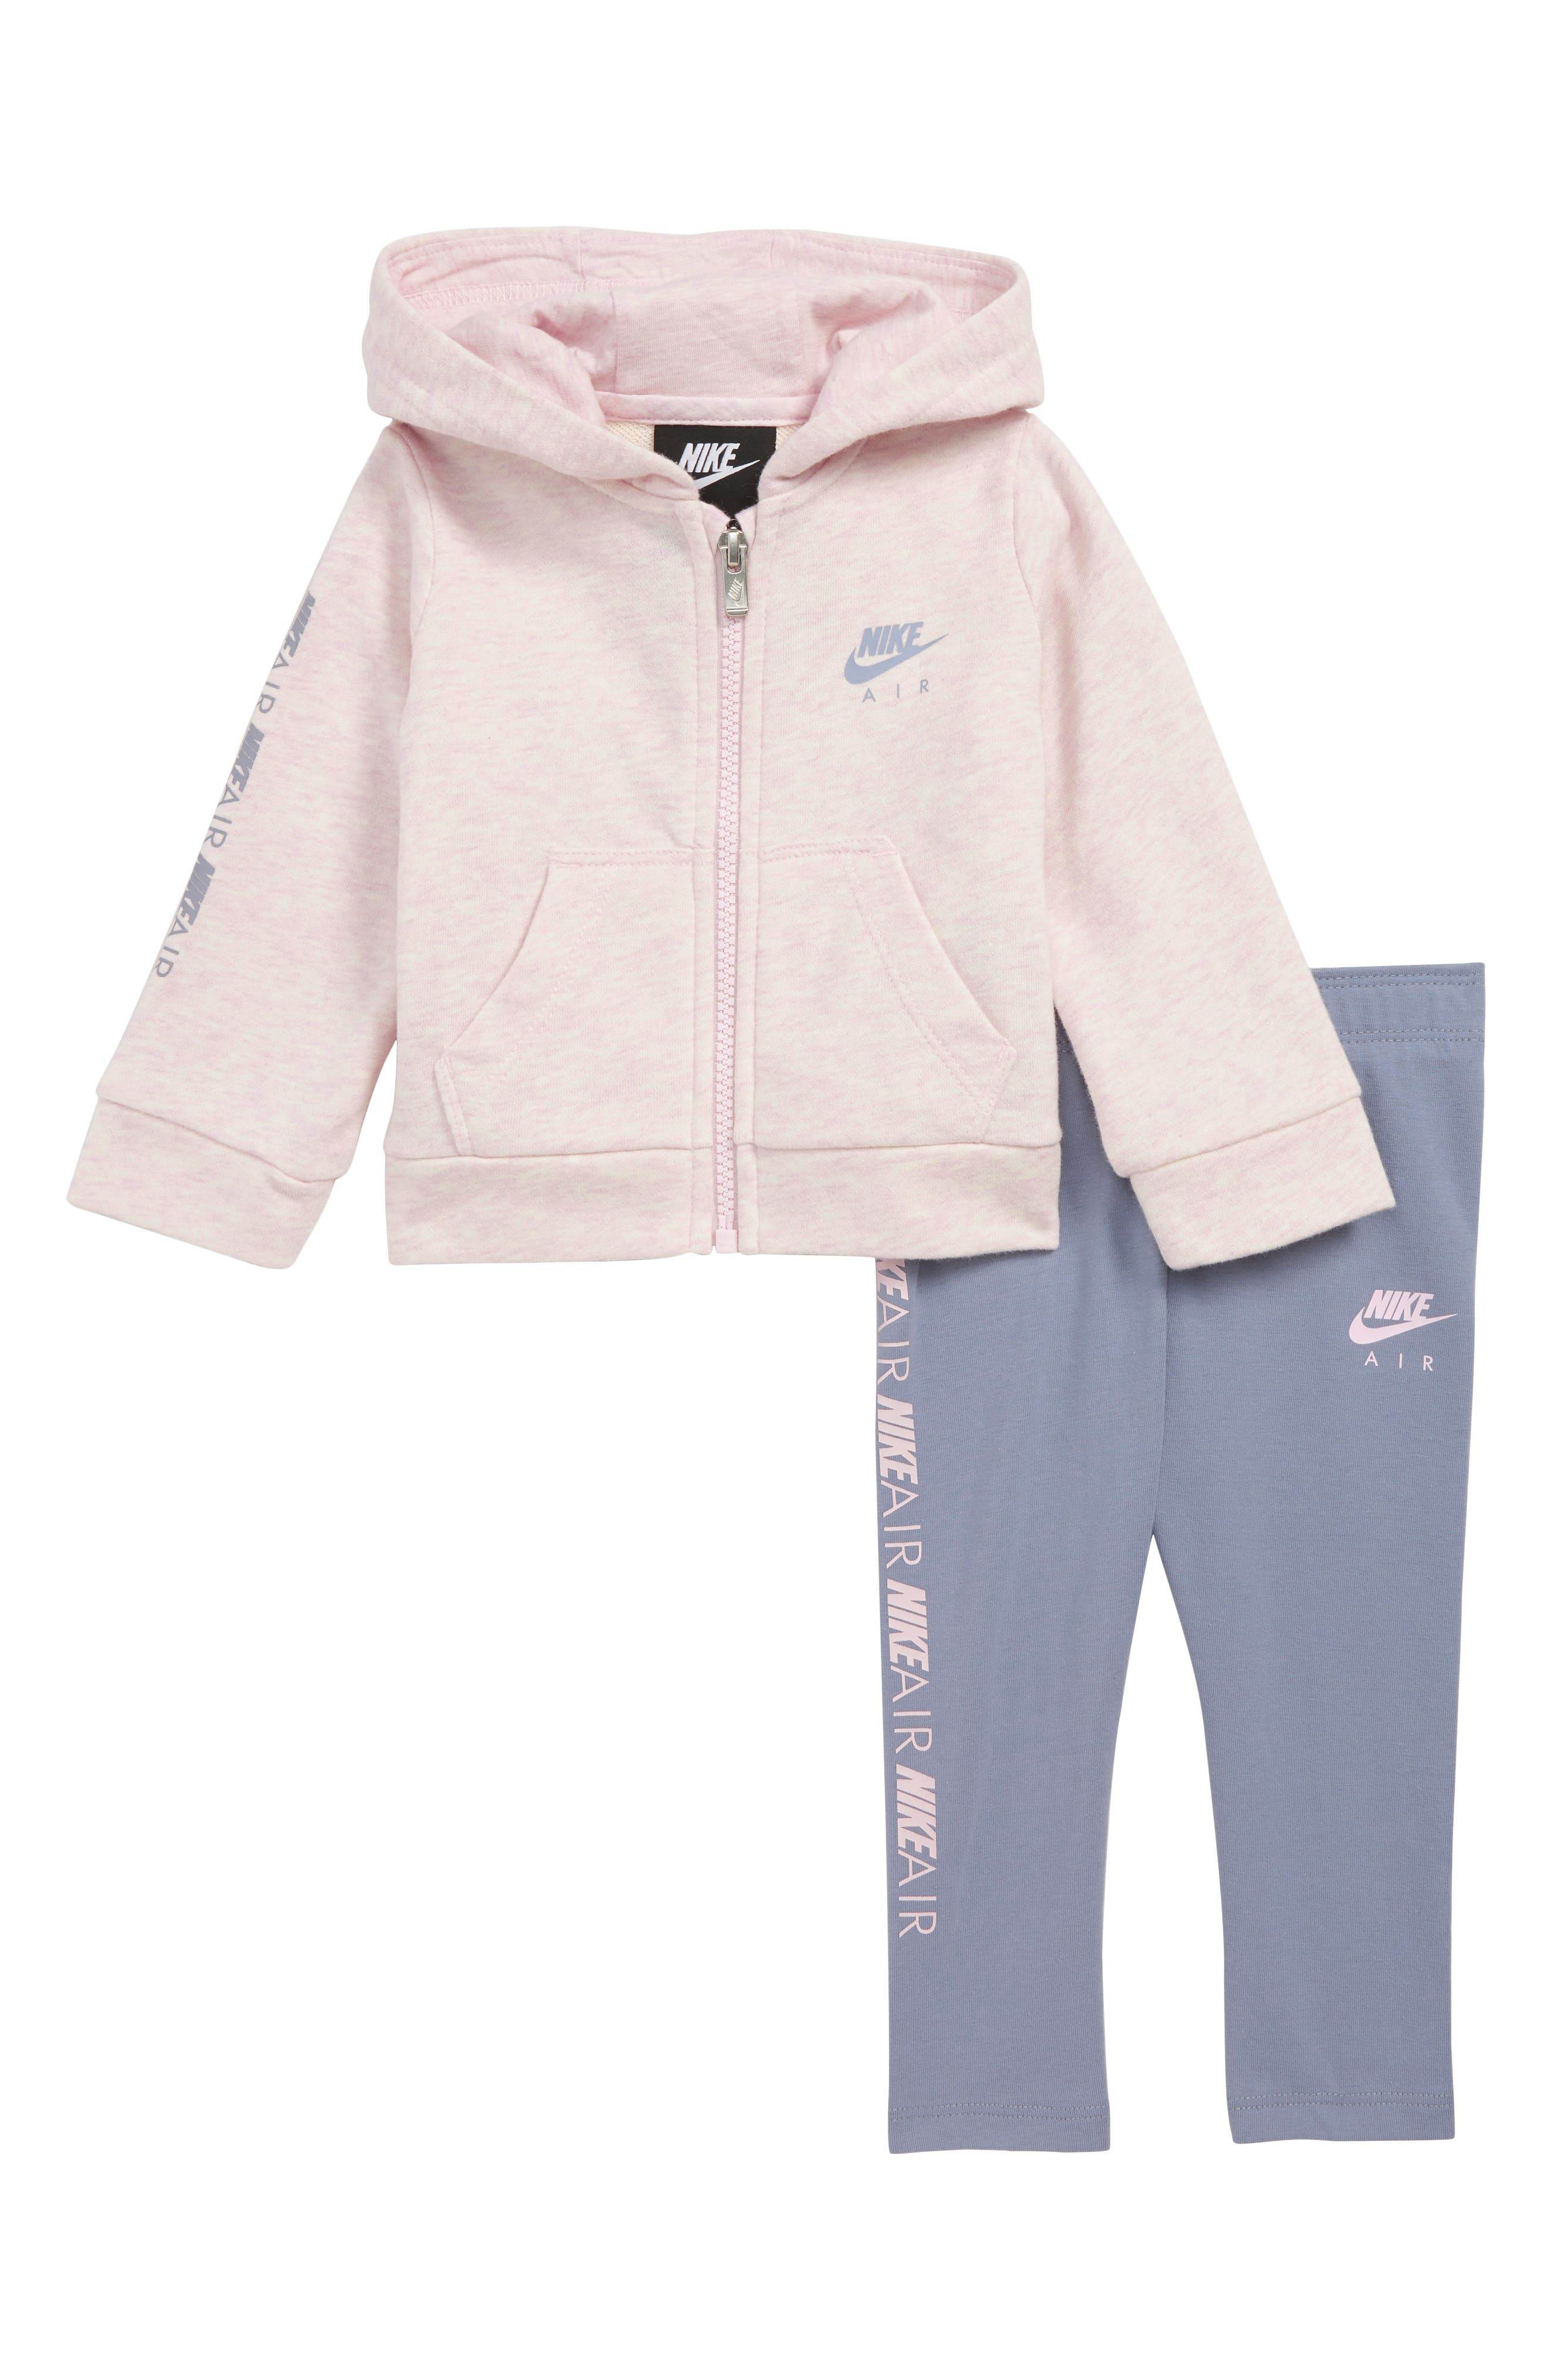 new style 1cb68 33306 Nike Baby Items  Clothing, Gear, Shoes and More   Nordstrom